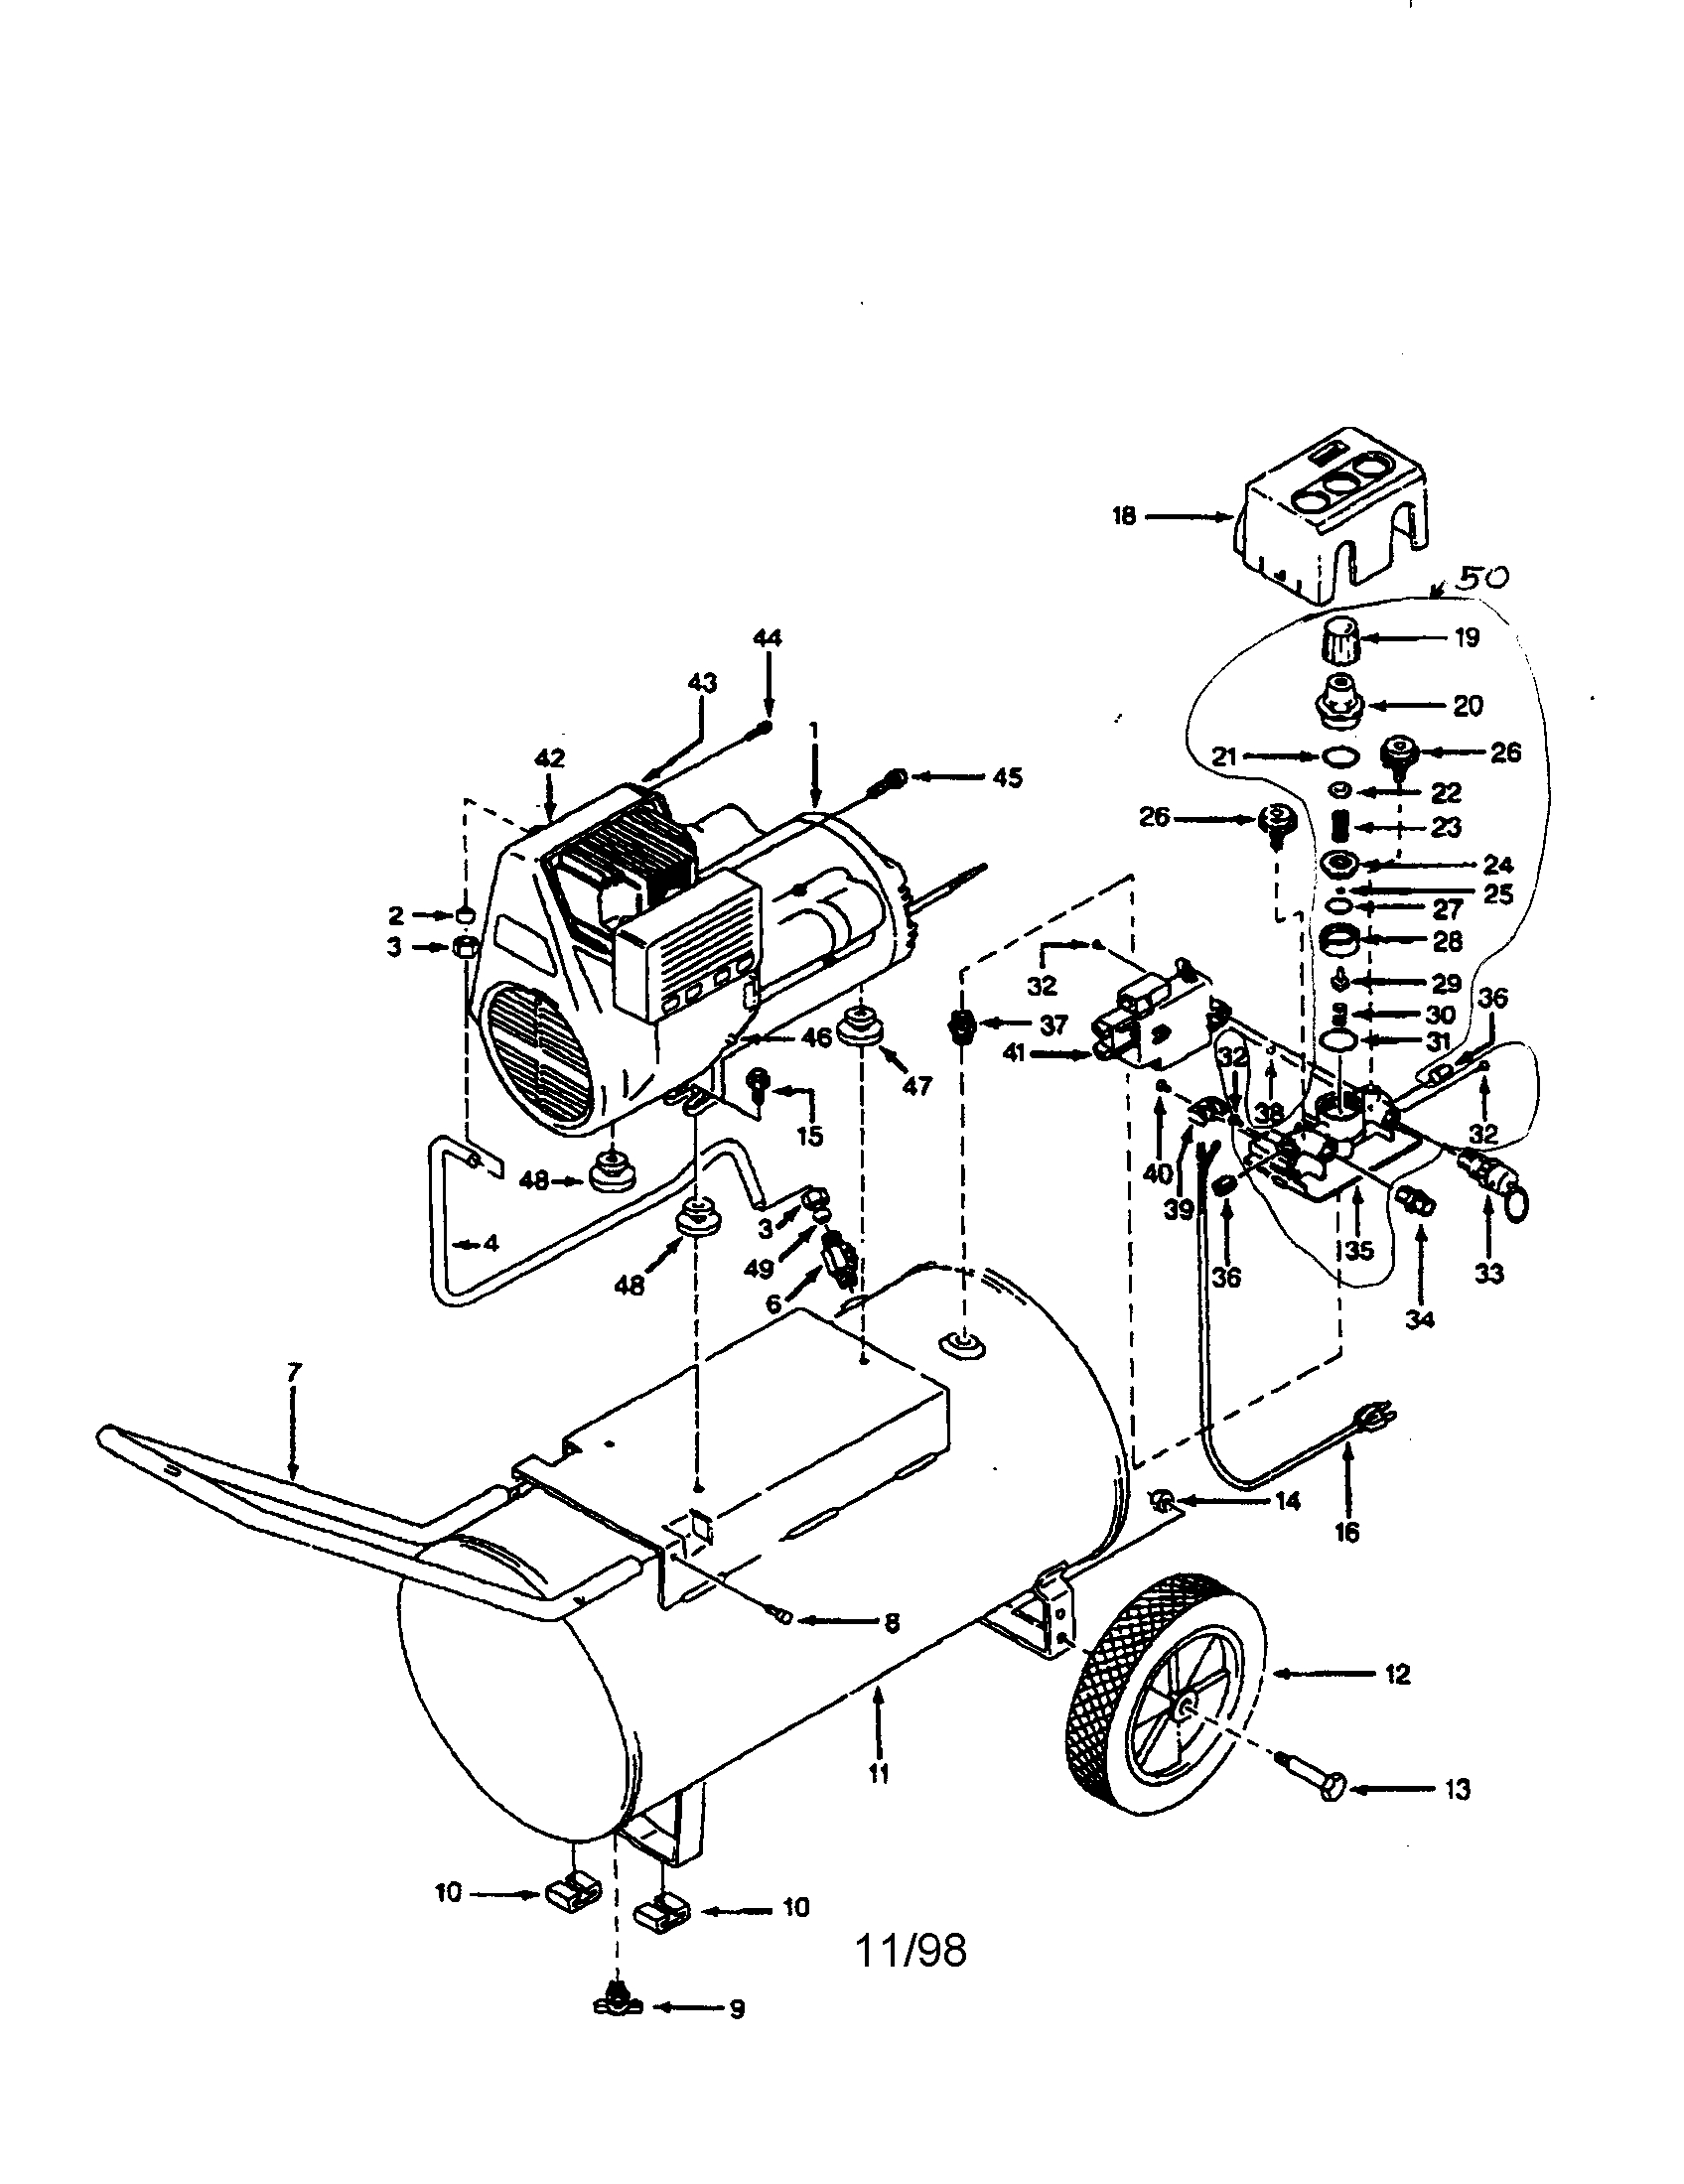 Campbell Hausfeld Air Compressor Parts Diagram